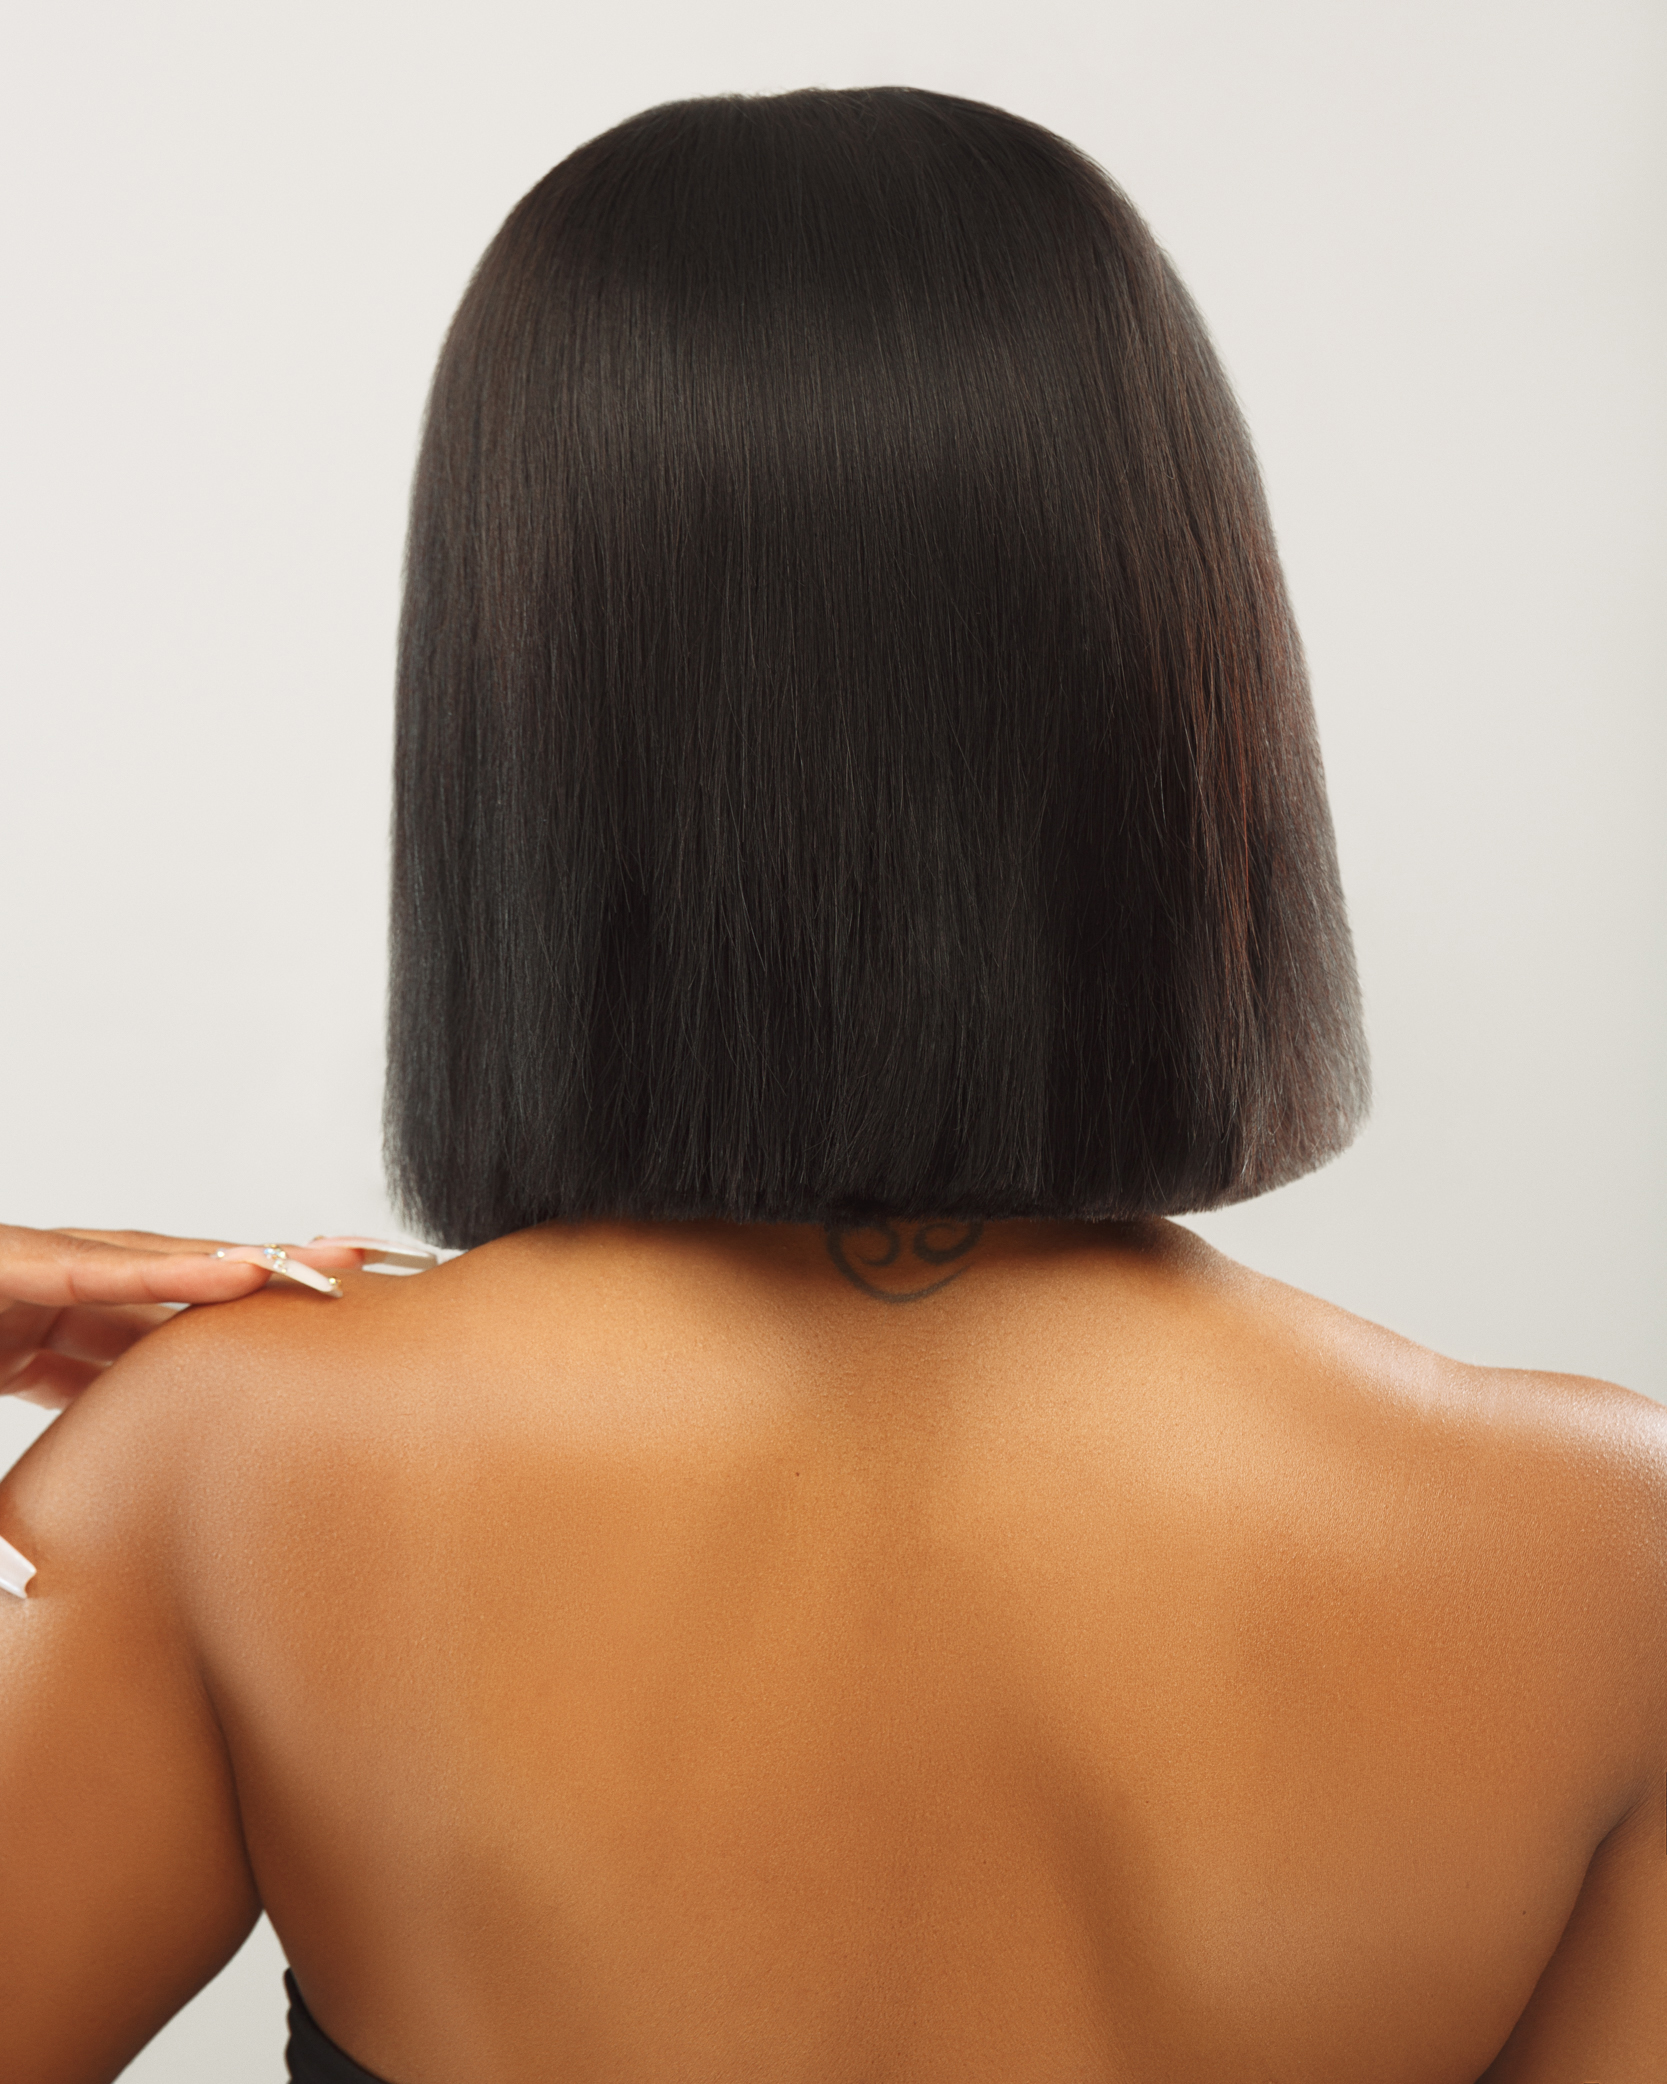 Its the Bob for me 12-14inch